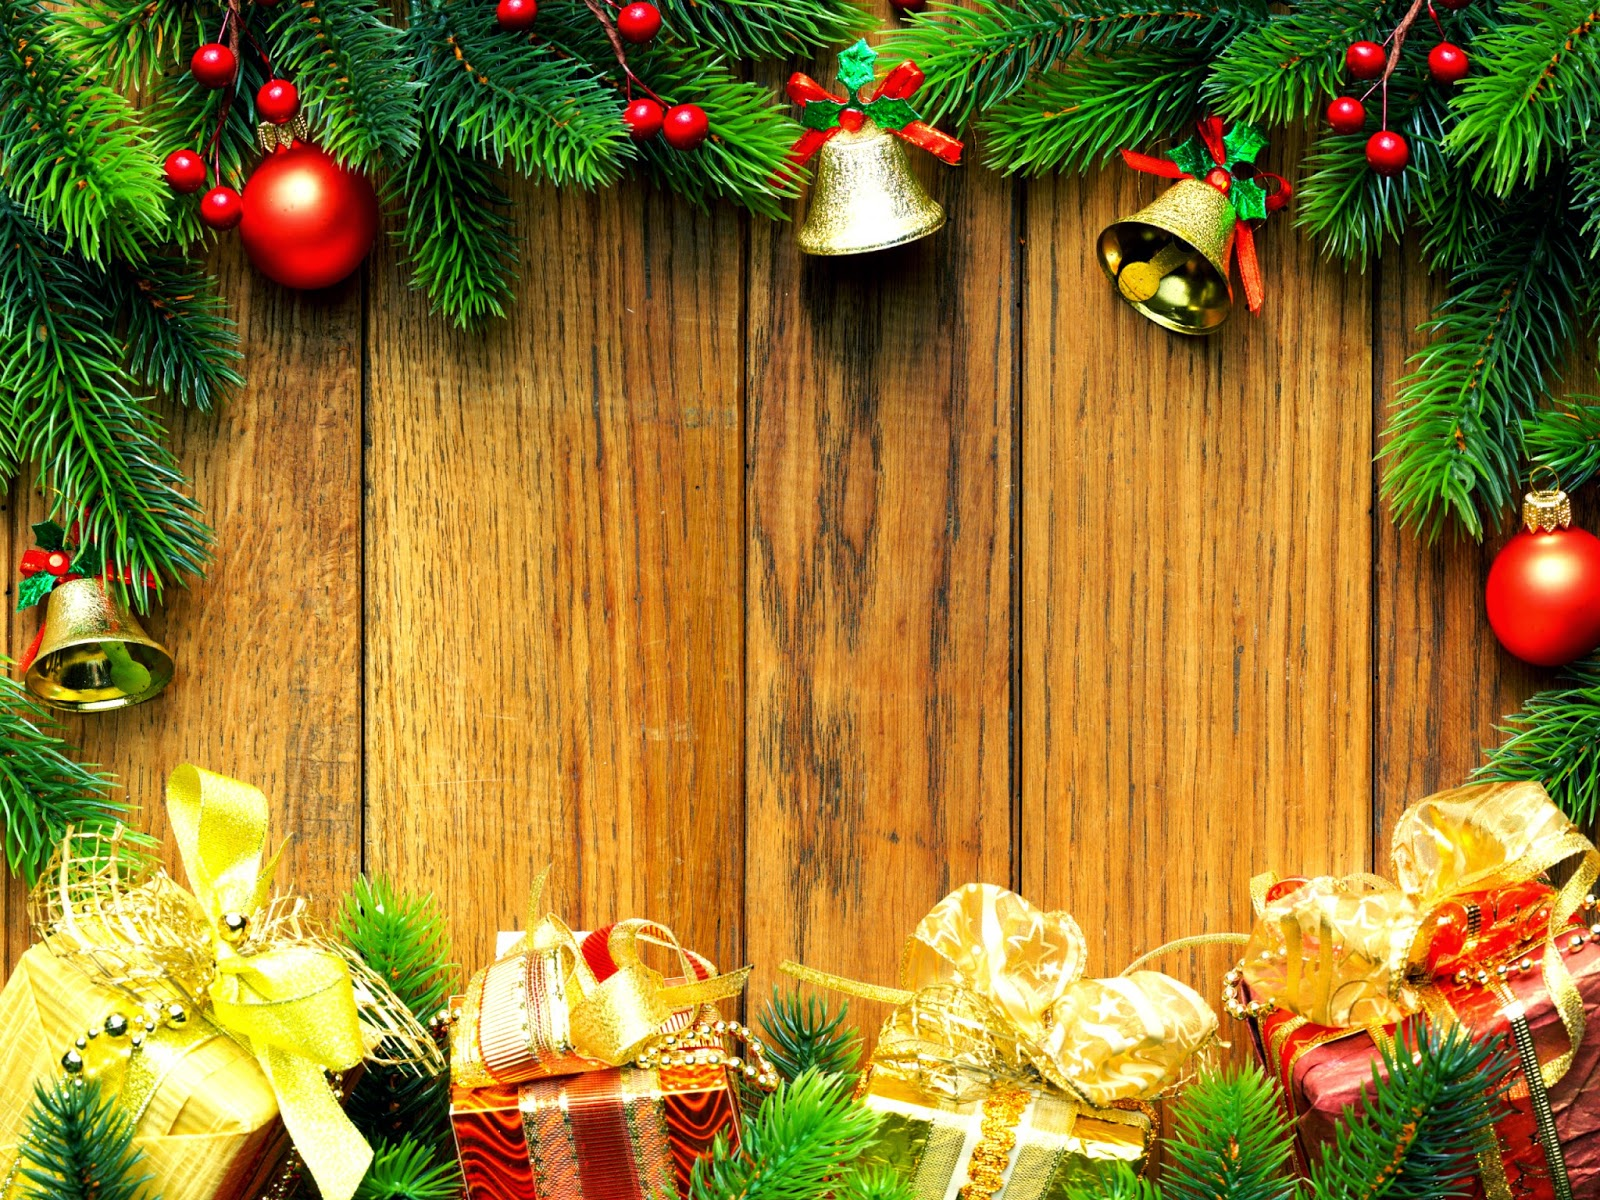 Christmas-wishes-greetings-HD-template-with-wooden-background-bells-gifts-2560x1920.jpg